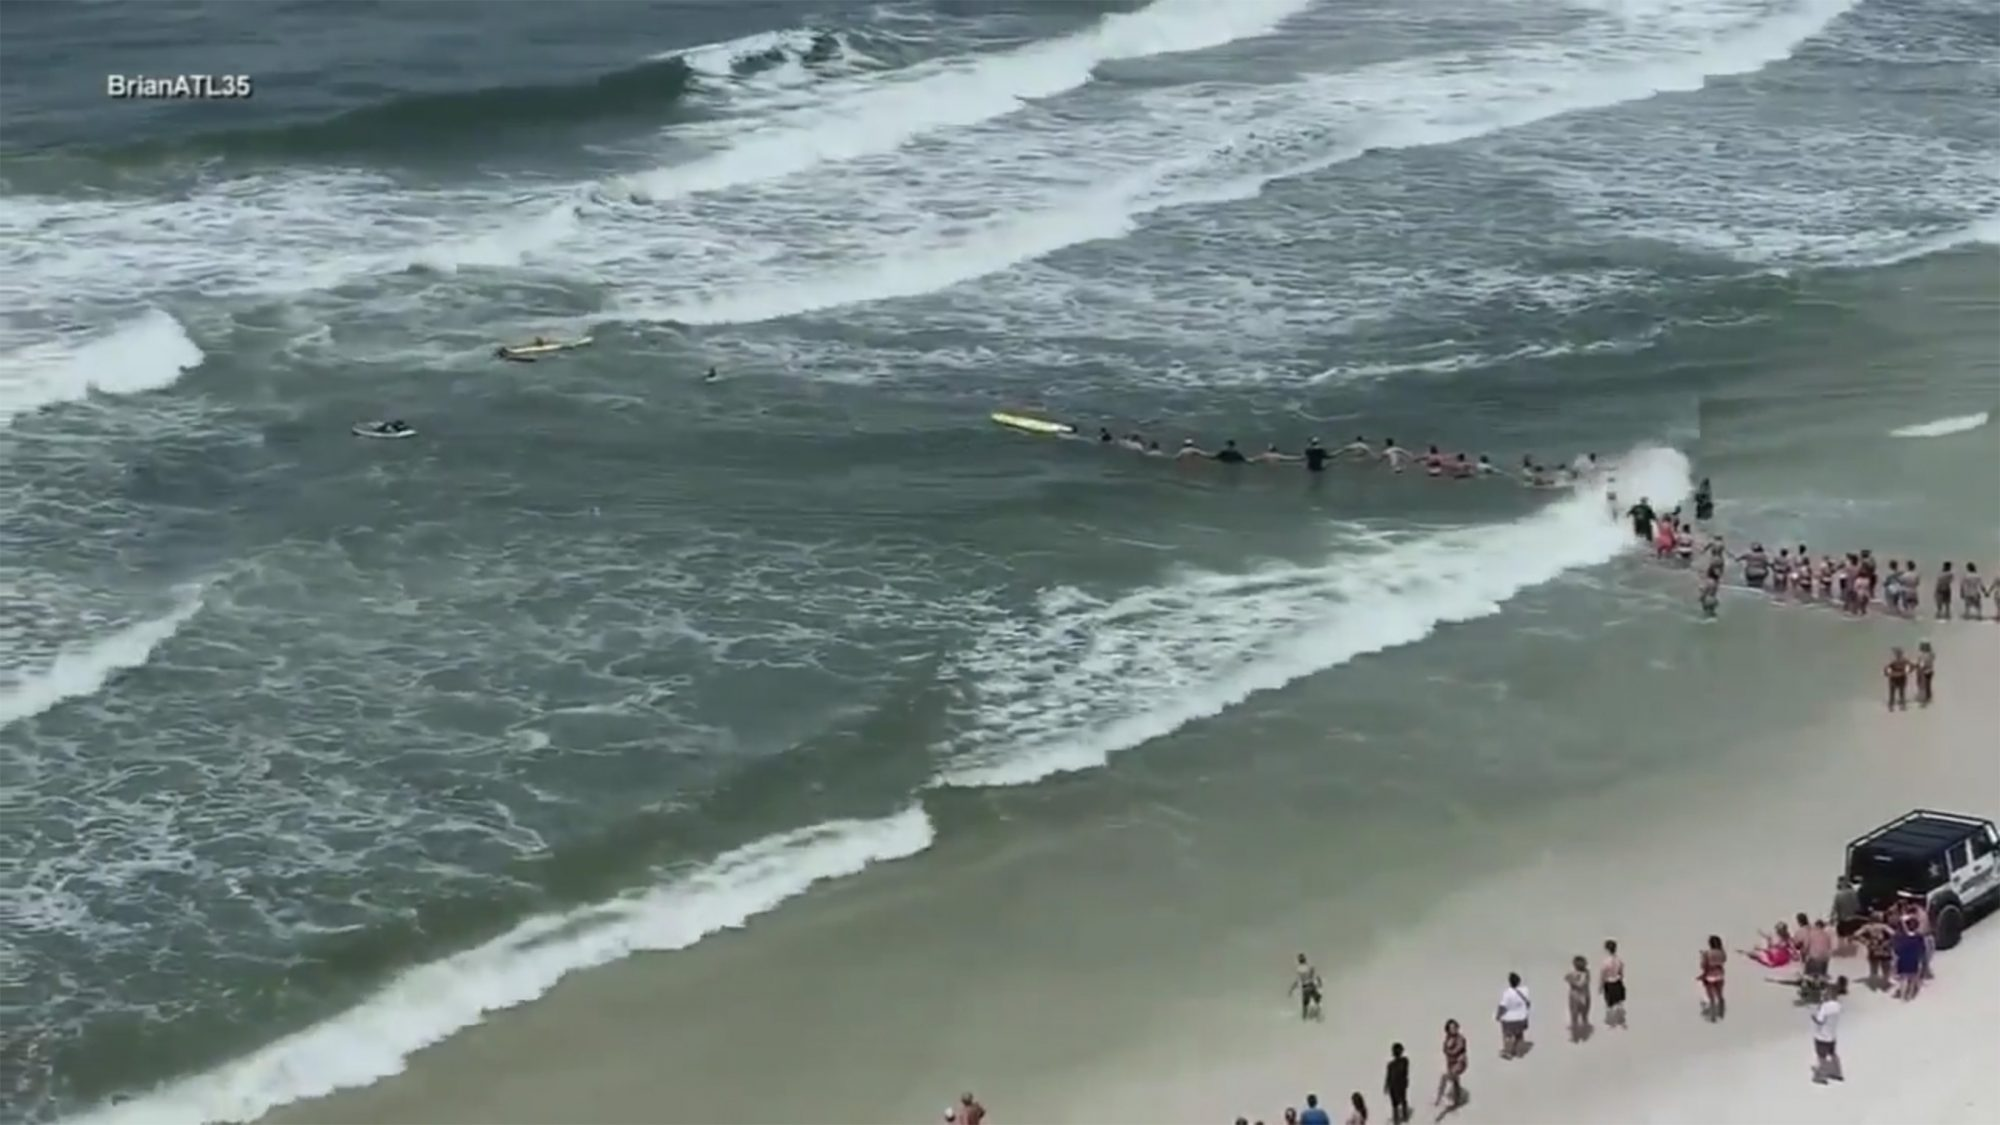 People formed a human chain to rescue 40 people stuck in a rip current in Panama City https://abc7ny.com/weather/video-beachgoers-form-human-chain-to-rescue-swimmer-from-rip-currents/5396035/ Credit: ABC7NY